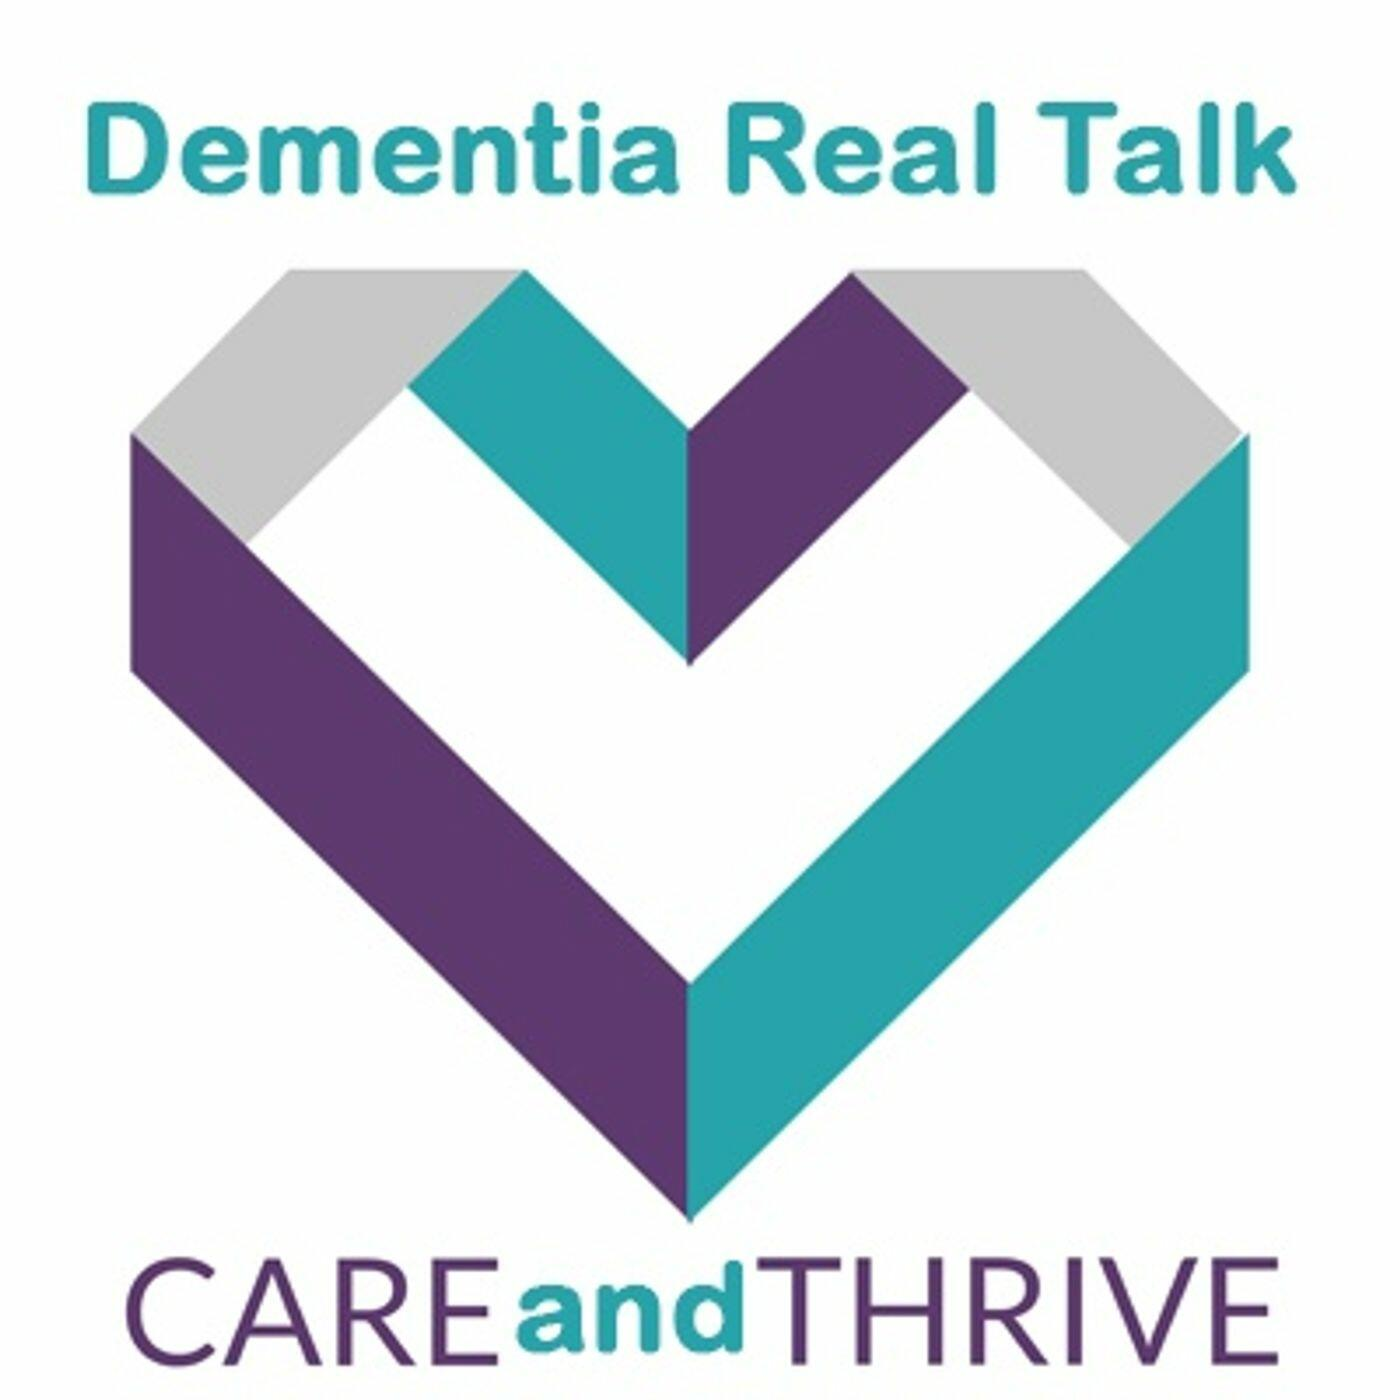 Dementia Real Talk, How To Care & Thrive